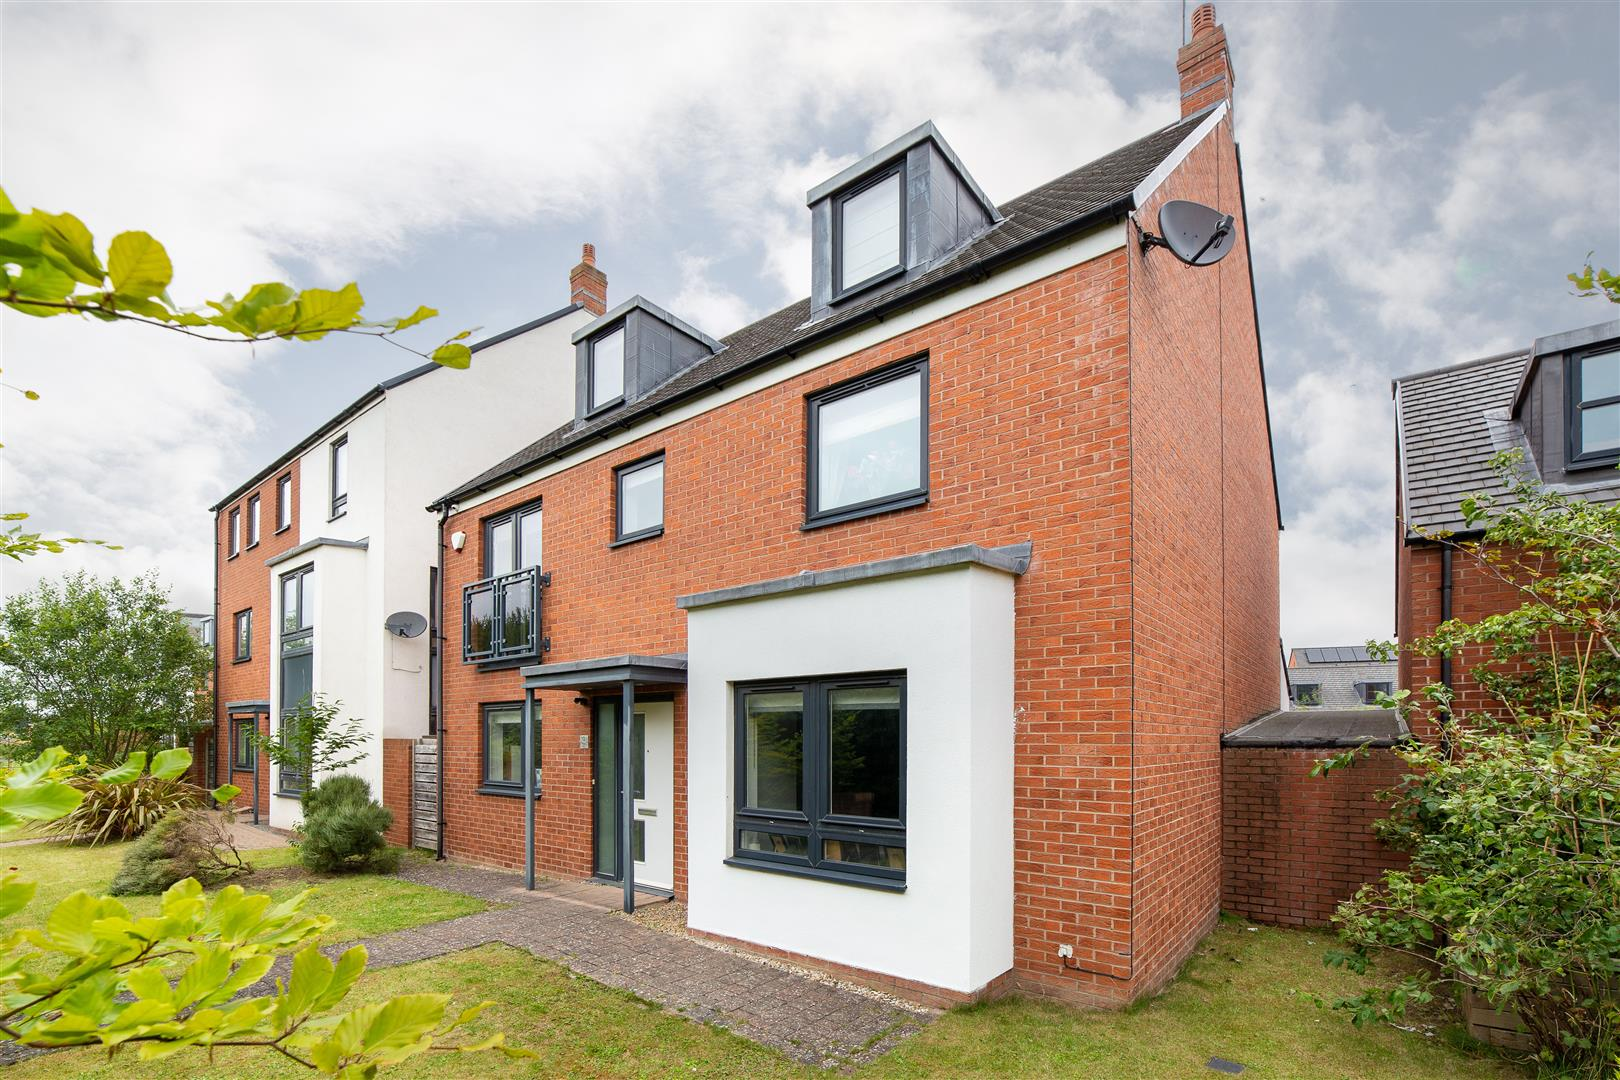 5 bed detached house for sale in Newcastle Upon Tyne, NE13 9AN  - Property Image 1